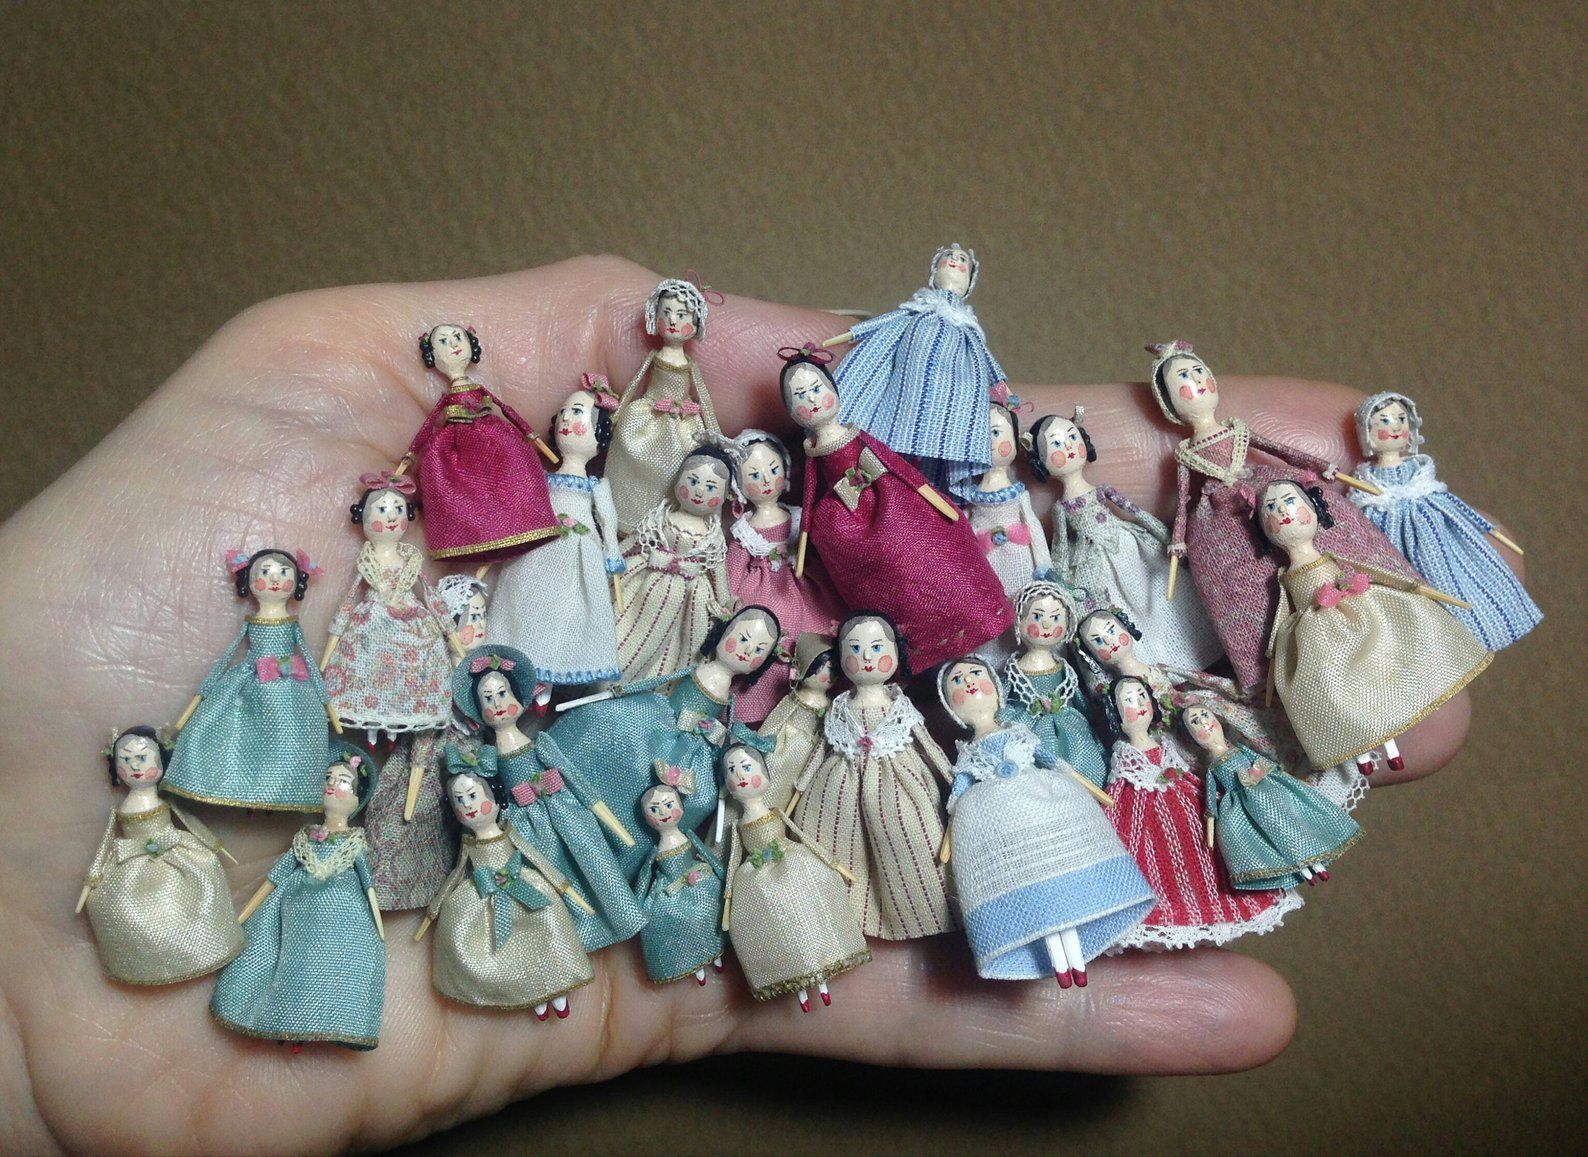 Mini Doll Peg 1:12 scale. 20 mm high approximate #miniaturedolls